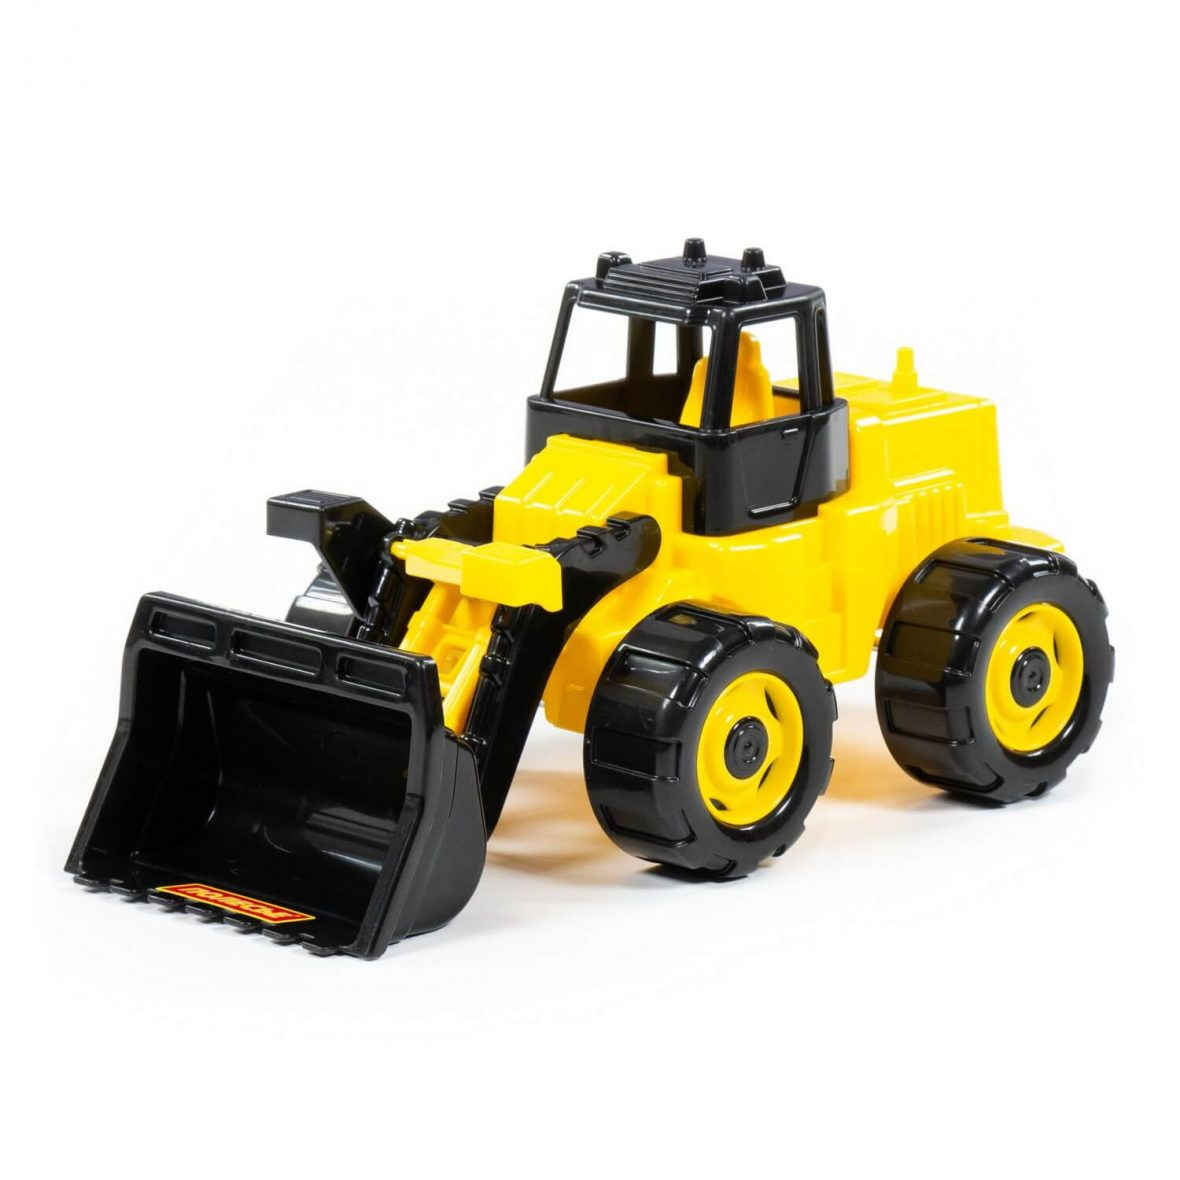 Heracles, tractor-loader